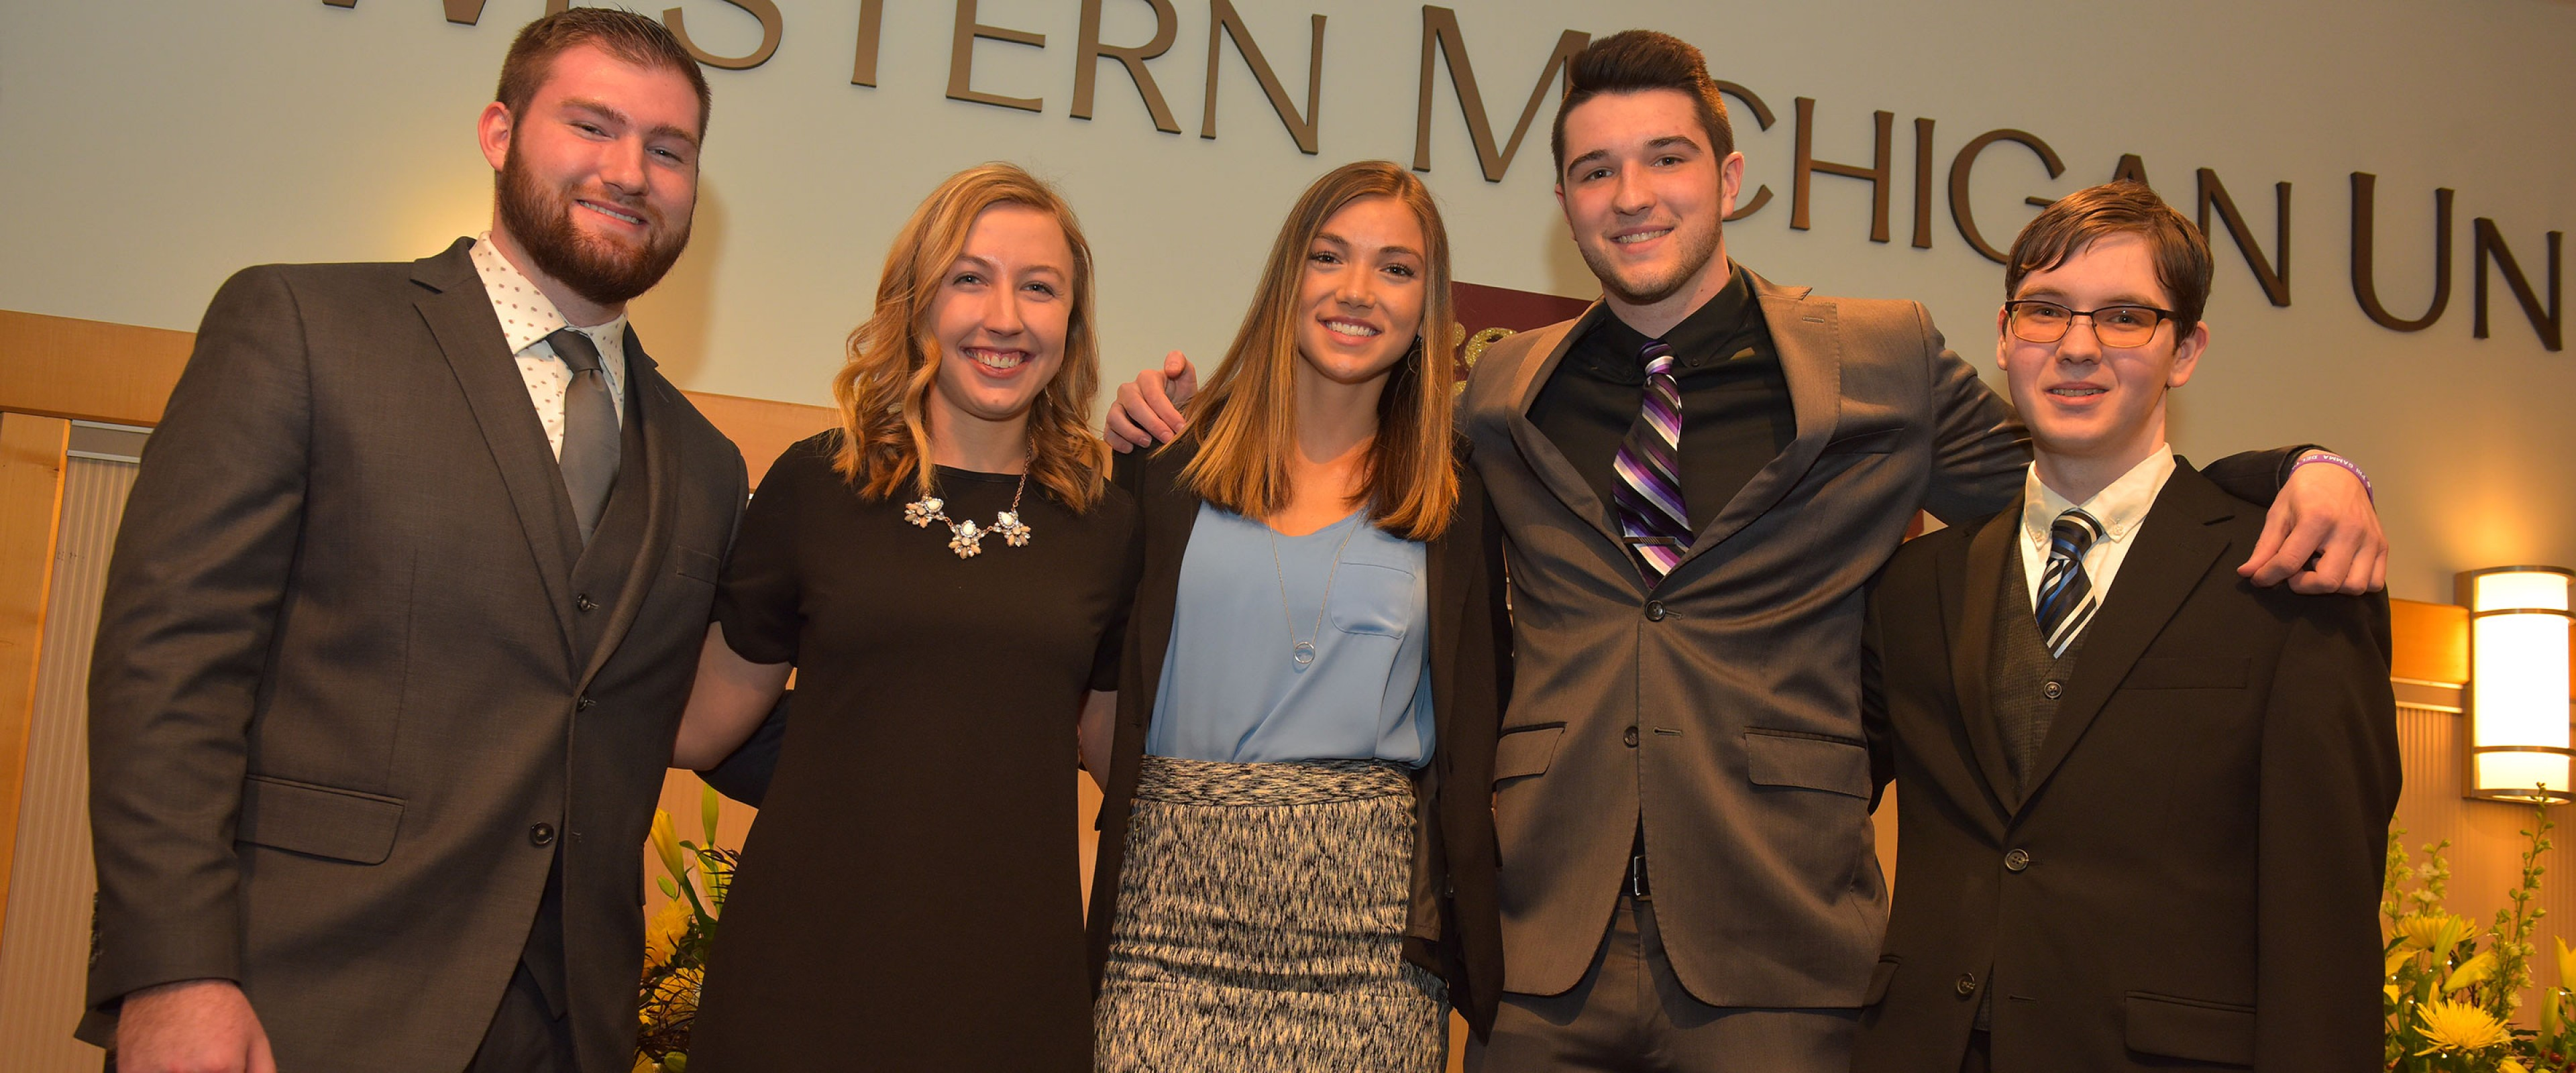 5 WMU students pose together after receiving a group award